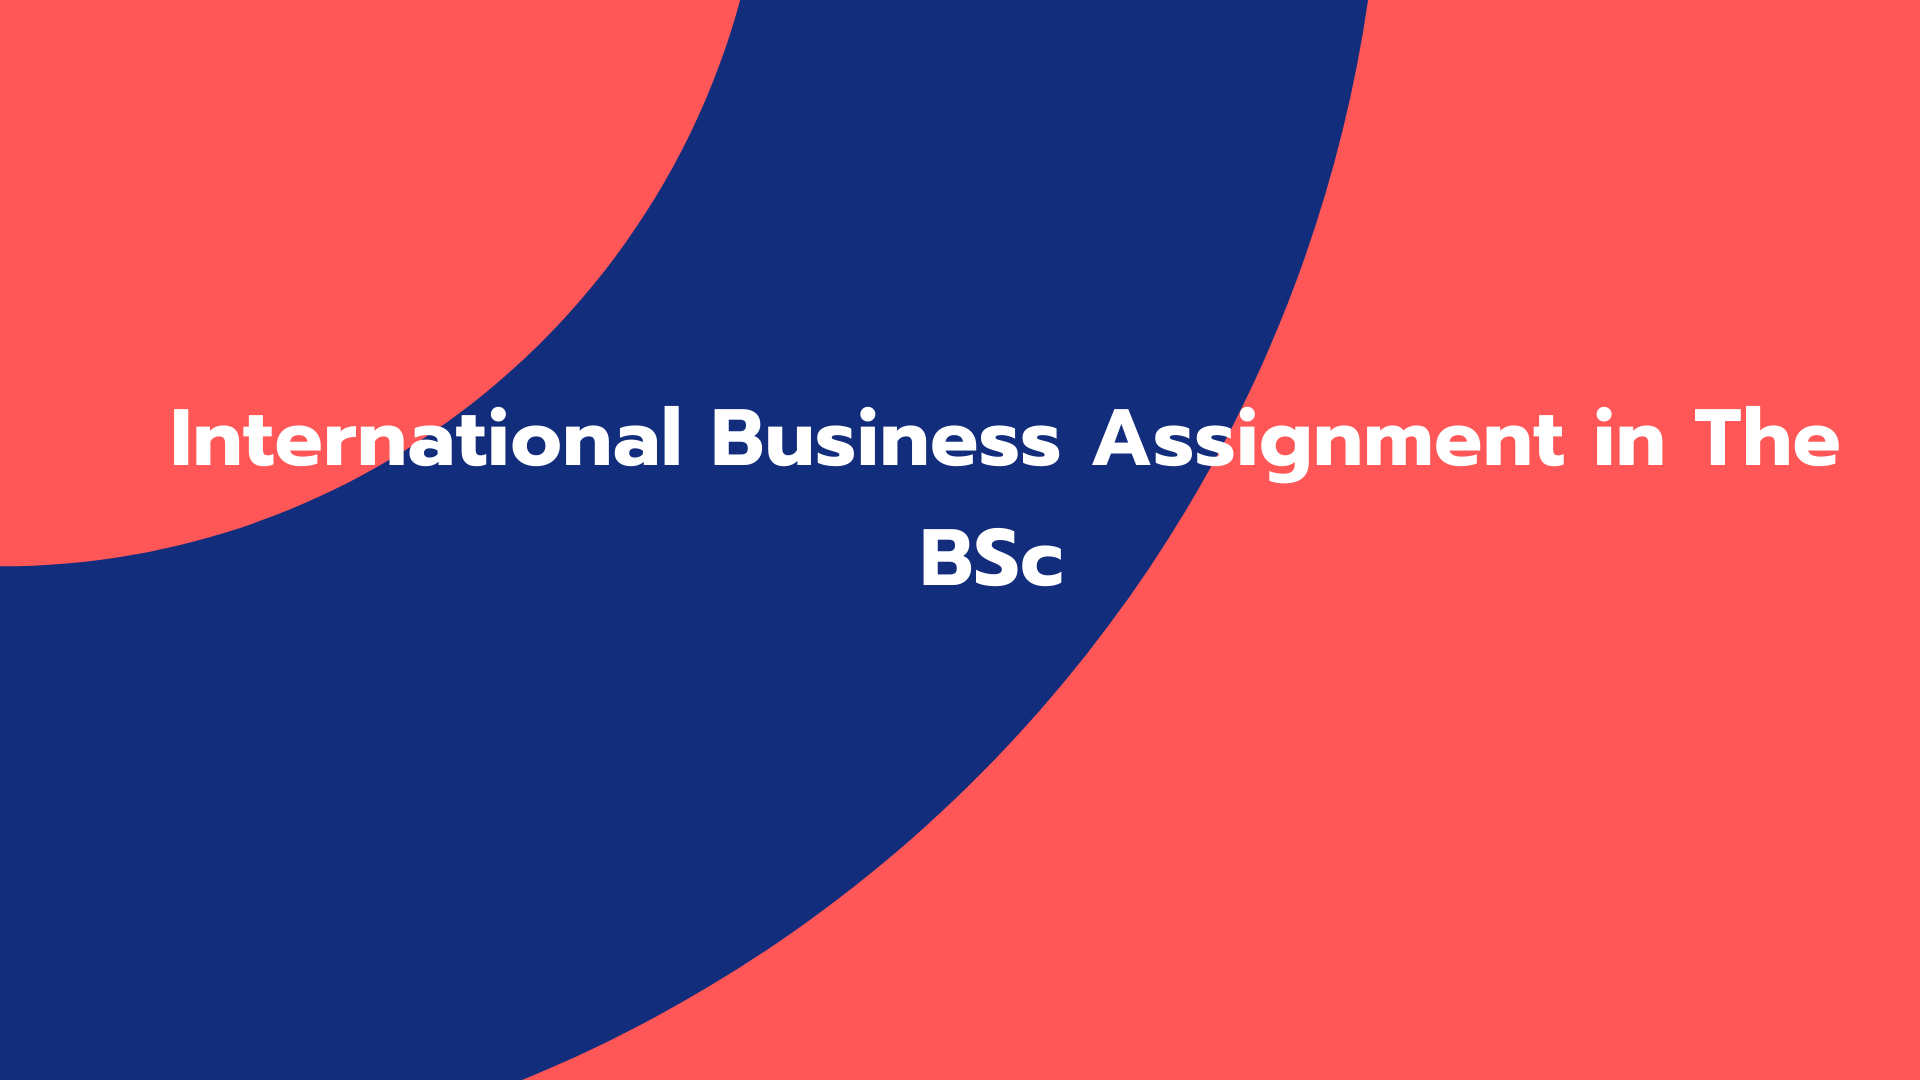 International Business Assignment in The BSc